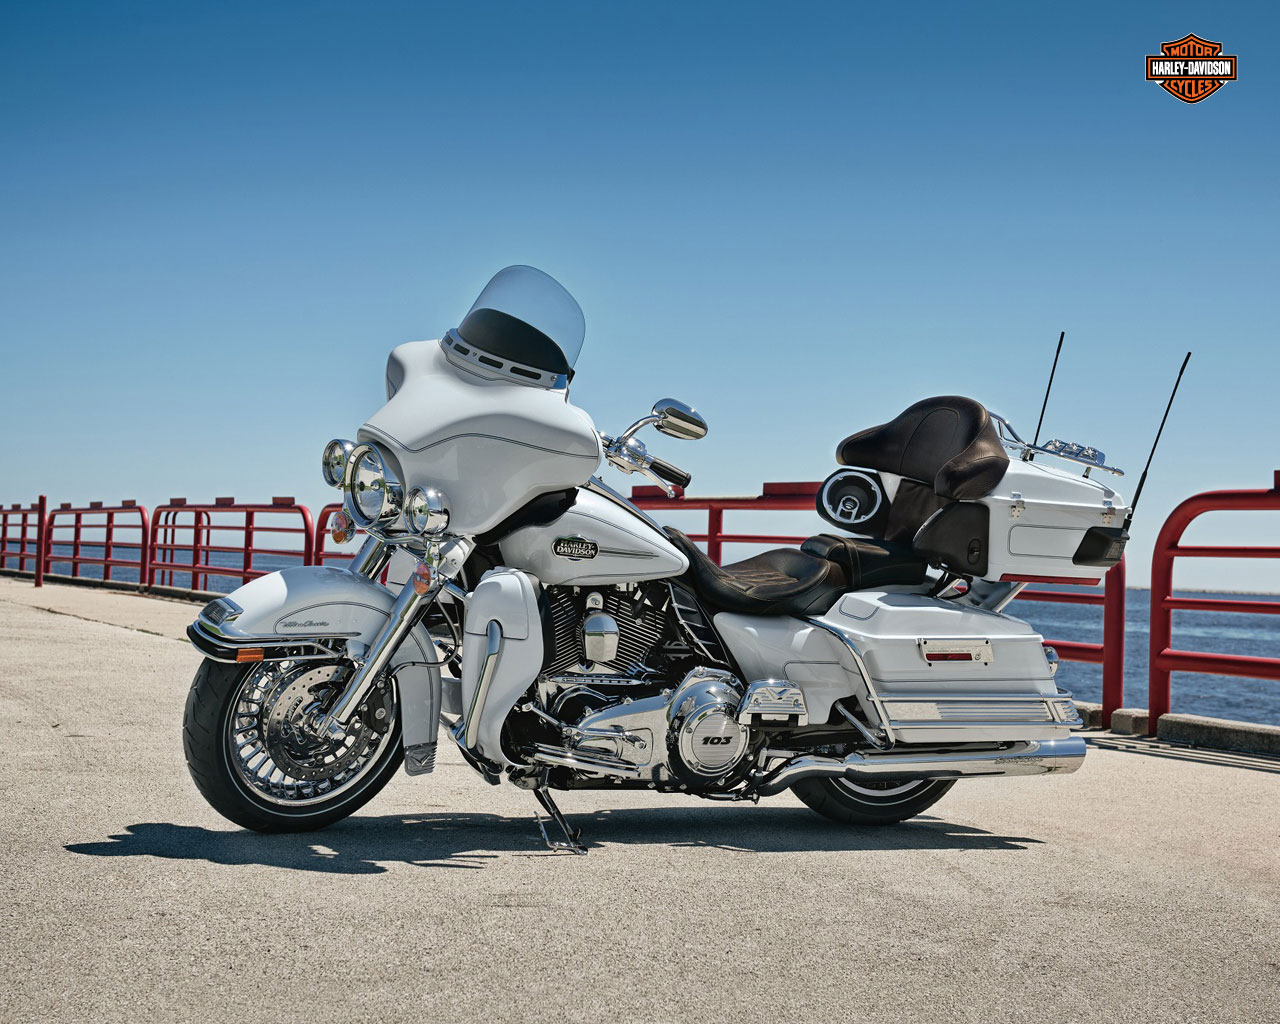 Harley-Davidson FLHTCU Electra Glide Ultra Classic 2010 images #81163